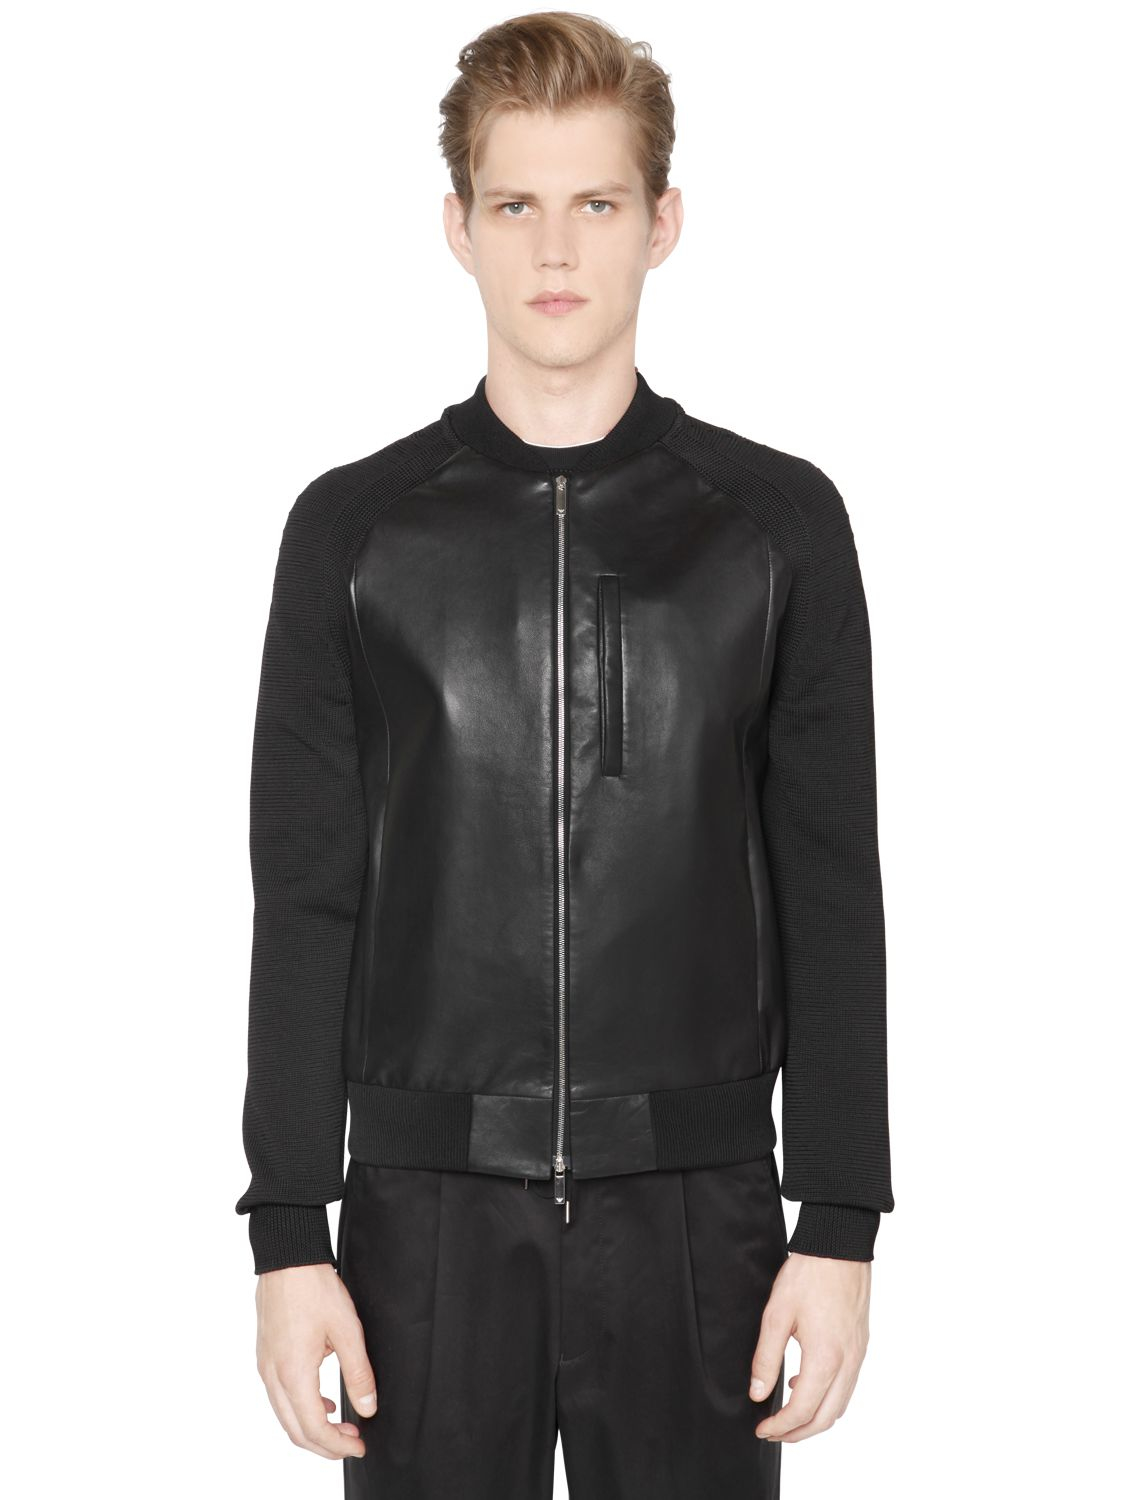 emporio armani nappa leather jacket with knit sleeves in black for men lyst. Black Bedroom Furniture Sets. Home Design Ideas